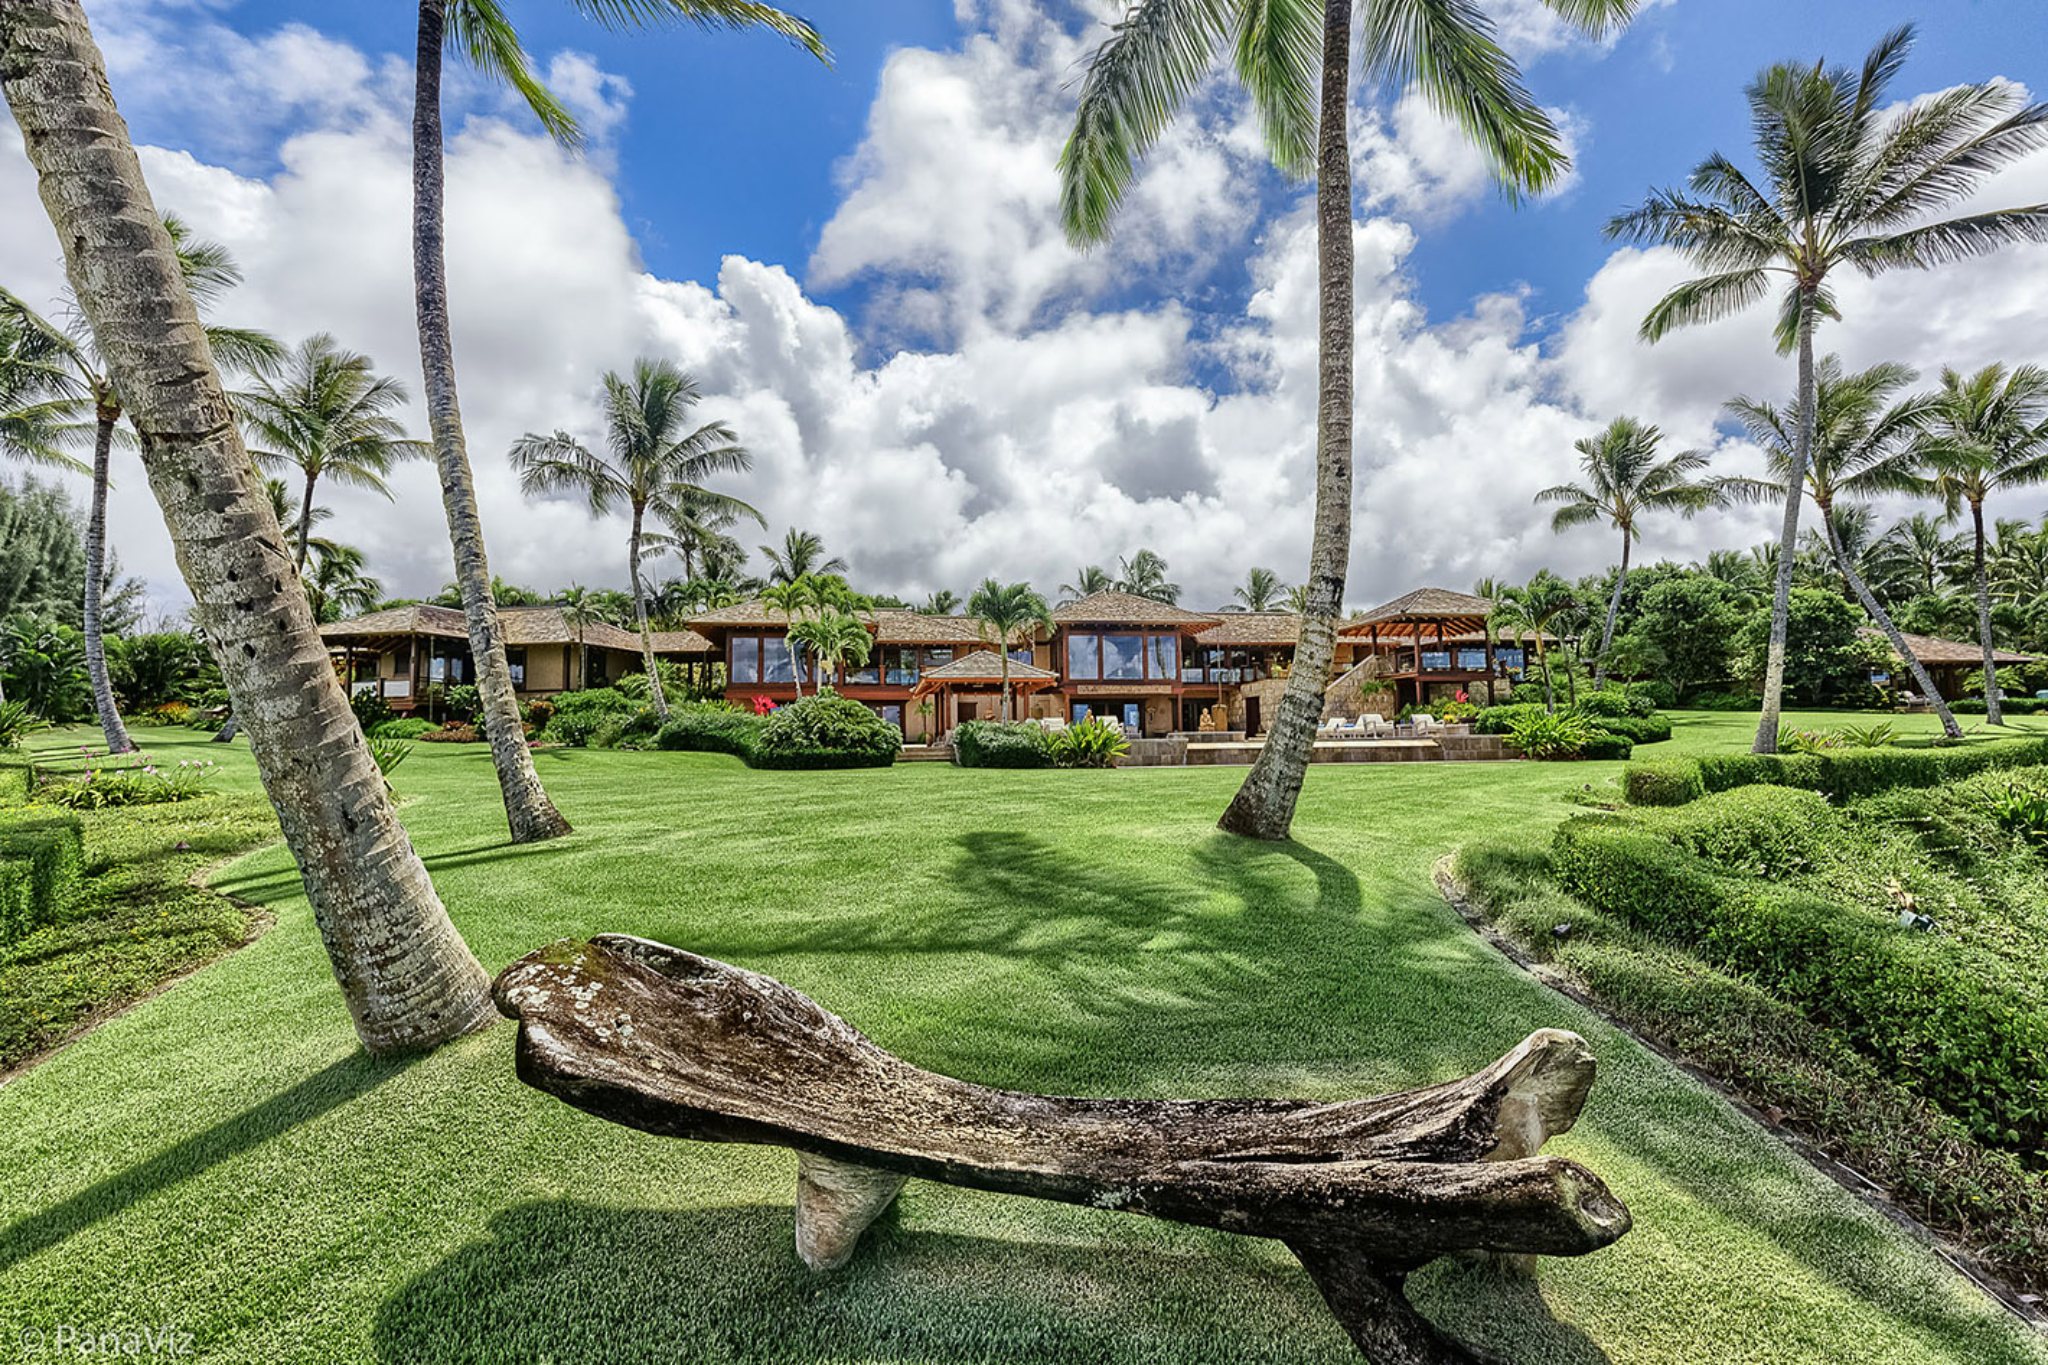 kauai-real-estate-photos-panaviz-luxury-vacation-home-44